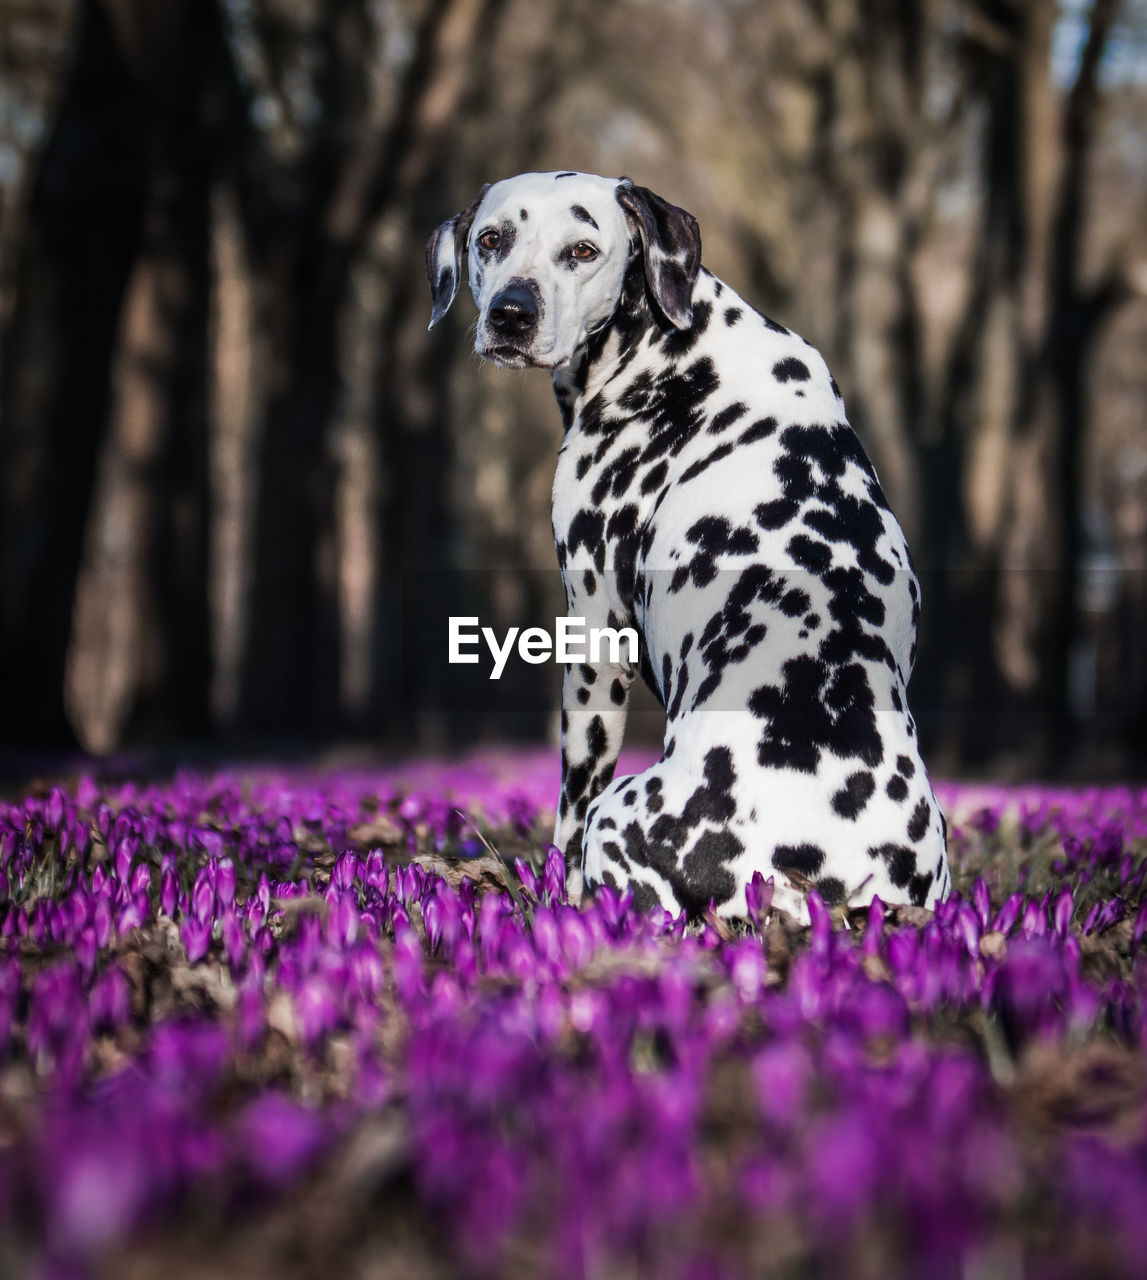 one animal, dog, animal themes, canine, animal, pets, plant, mammal, domestic animals, domestic, dalmatian dog, flowering plant, selective focus, purple, flower, vertebrate, spotted, nature, no people, day, outdoors, purebred dog